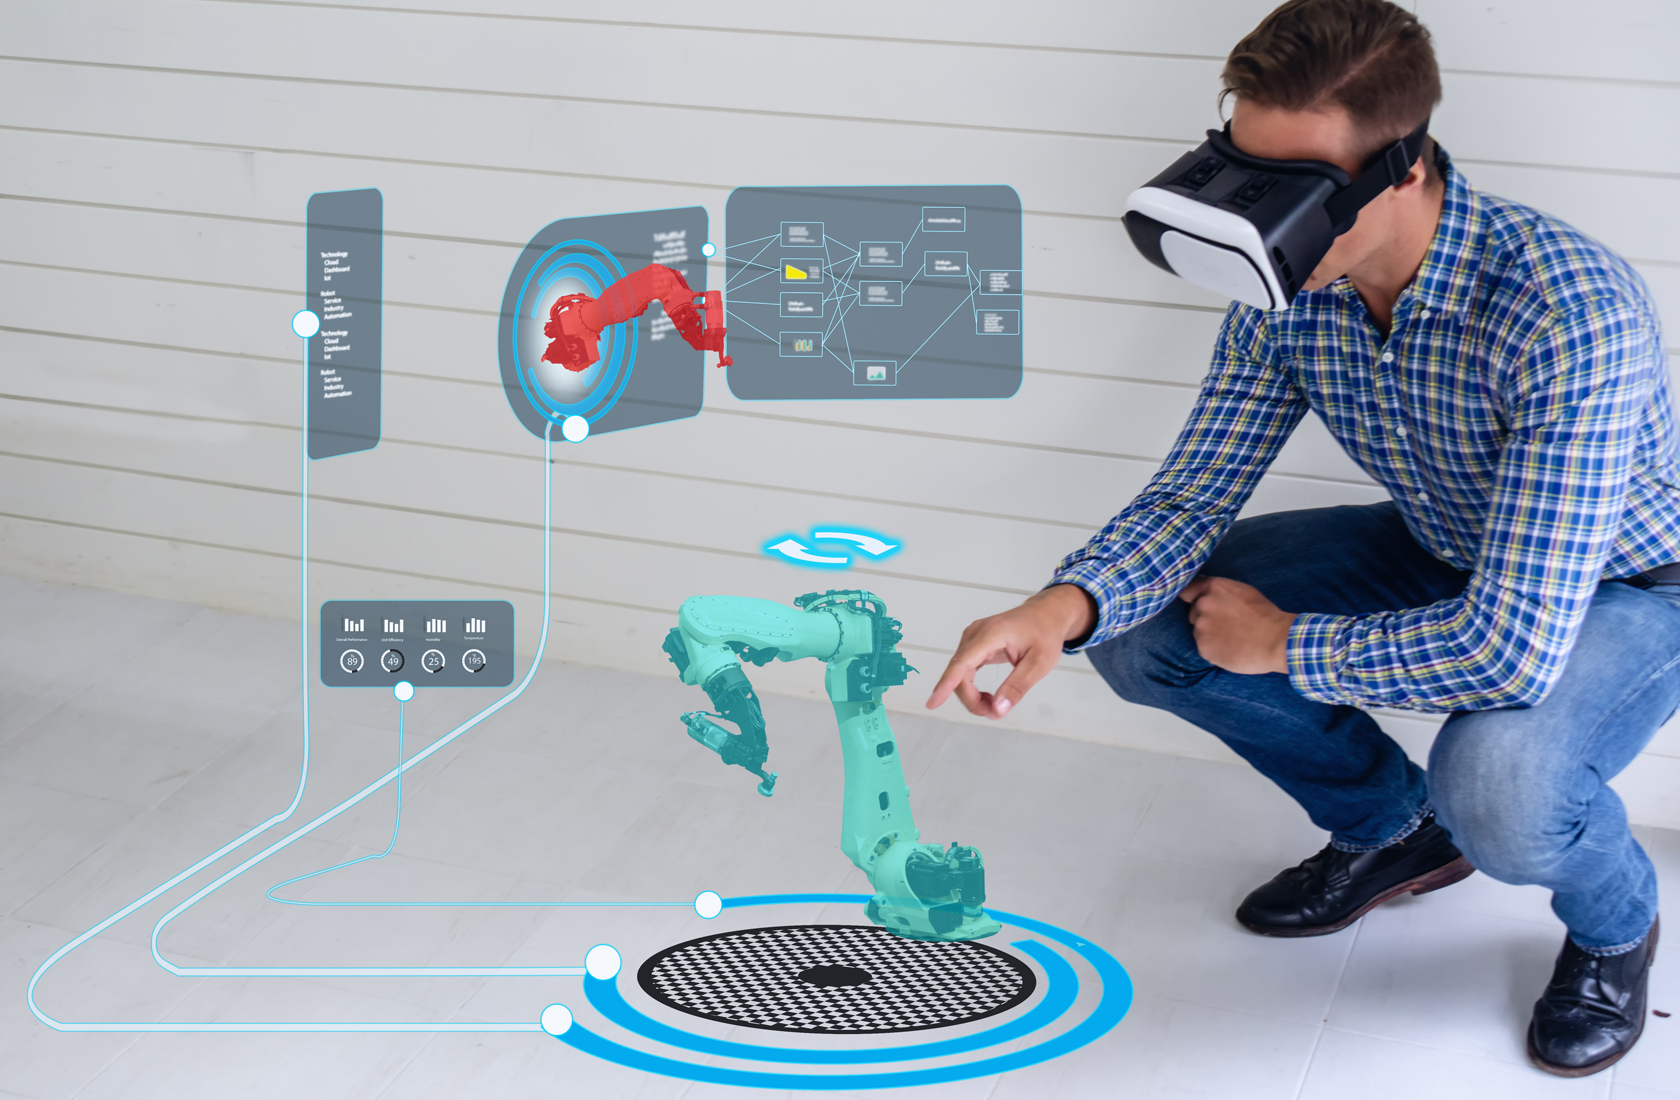 Augmented reality can enhance product development